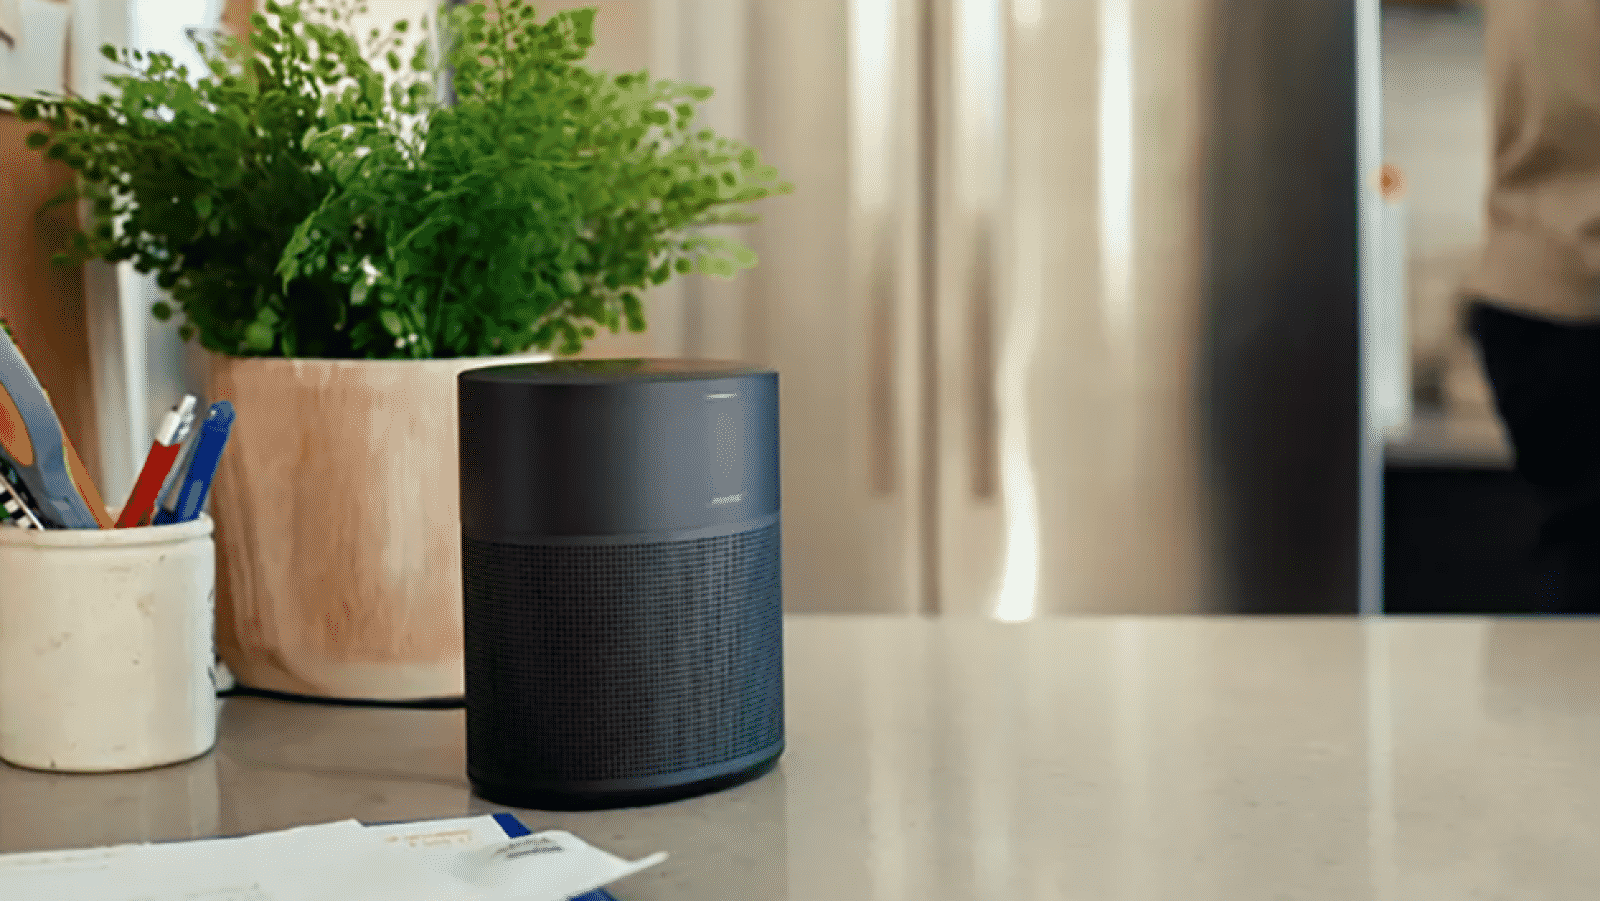 bose home 300 smart speaker on countertop with plants and letters